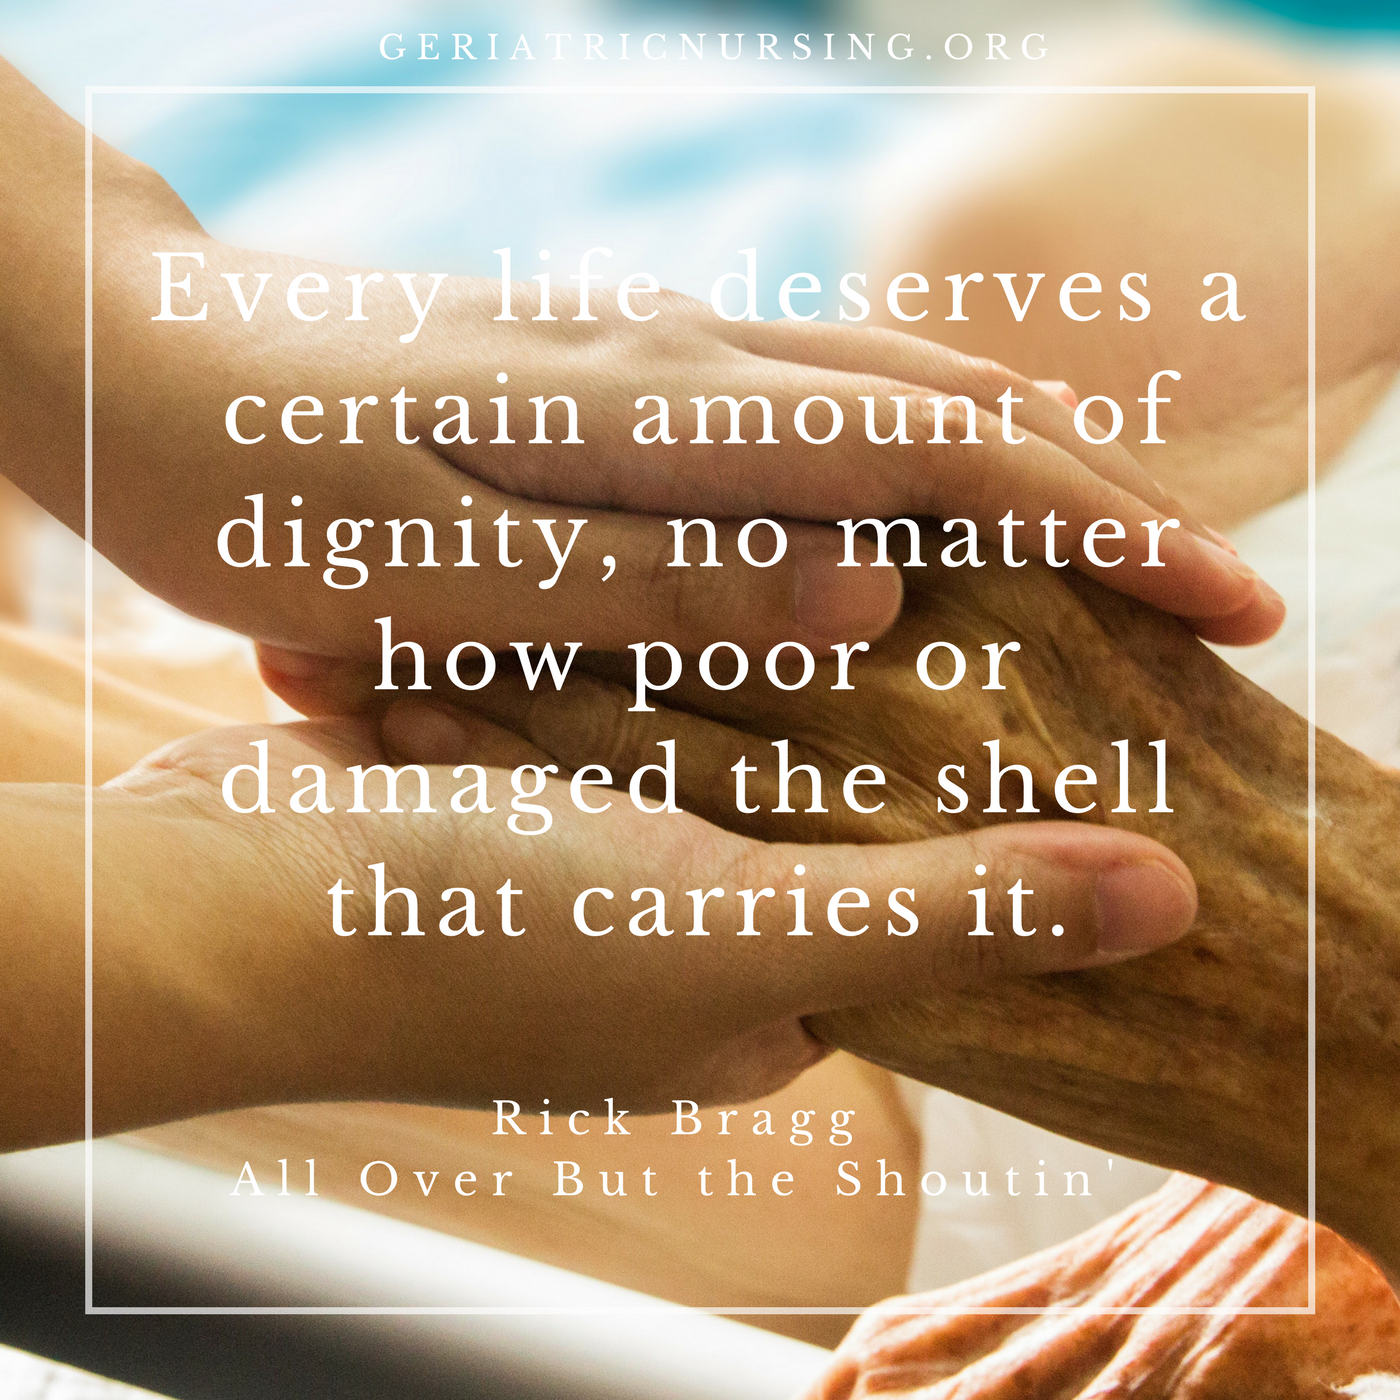 Every life deserves a certain amount of dignity, no matter how poor or damaged the shell that carries it.